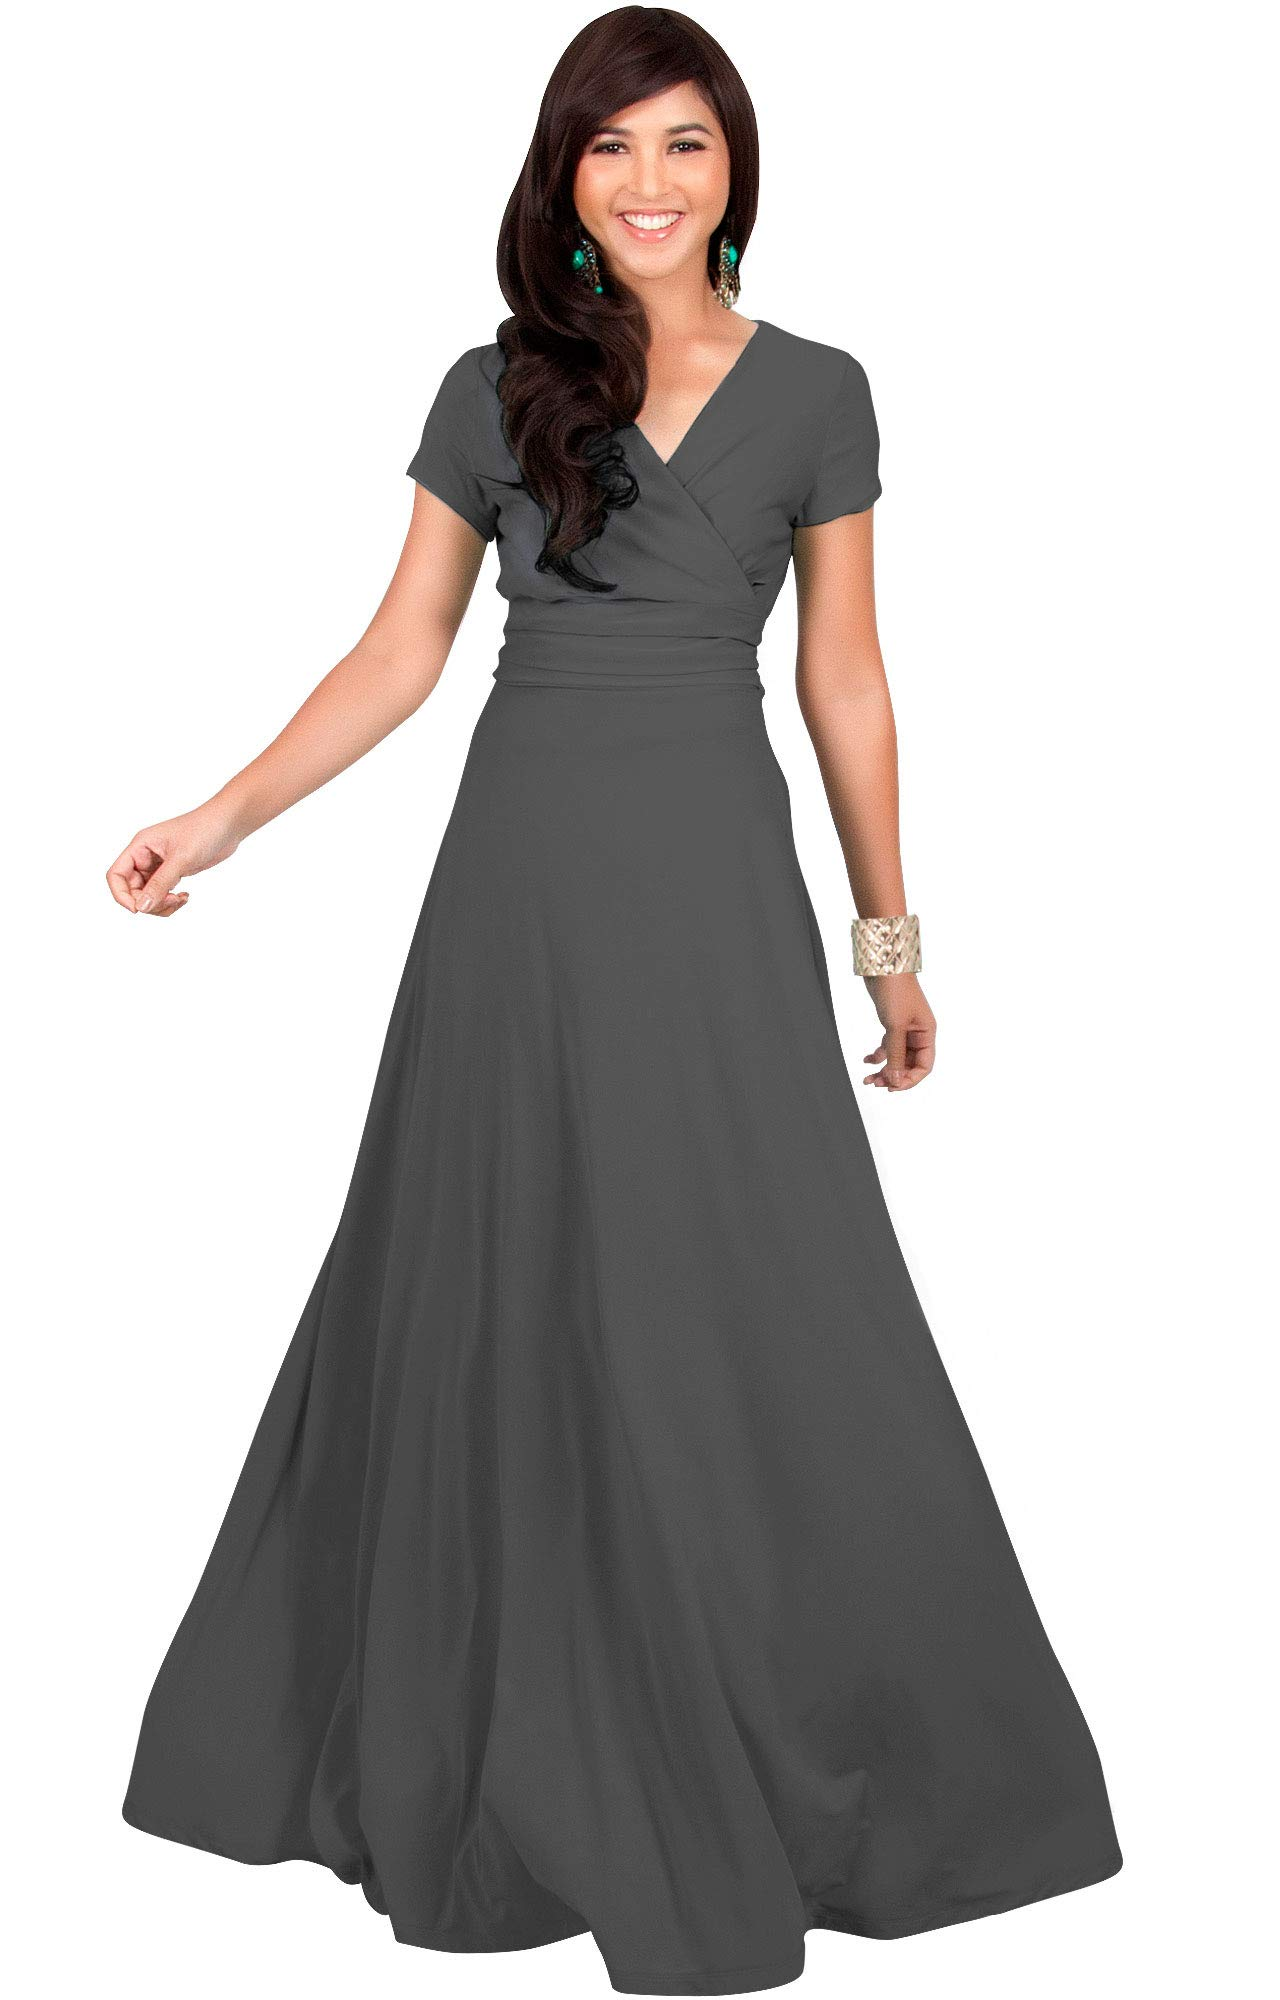 80ed17d84cde KOH KOH Womens Sexy Cap Short Sleeve V-neck Flowy Cocktail Gown - Amazon  Top Discounted Products